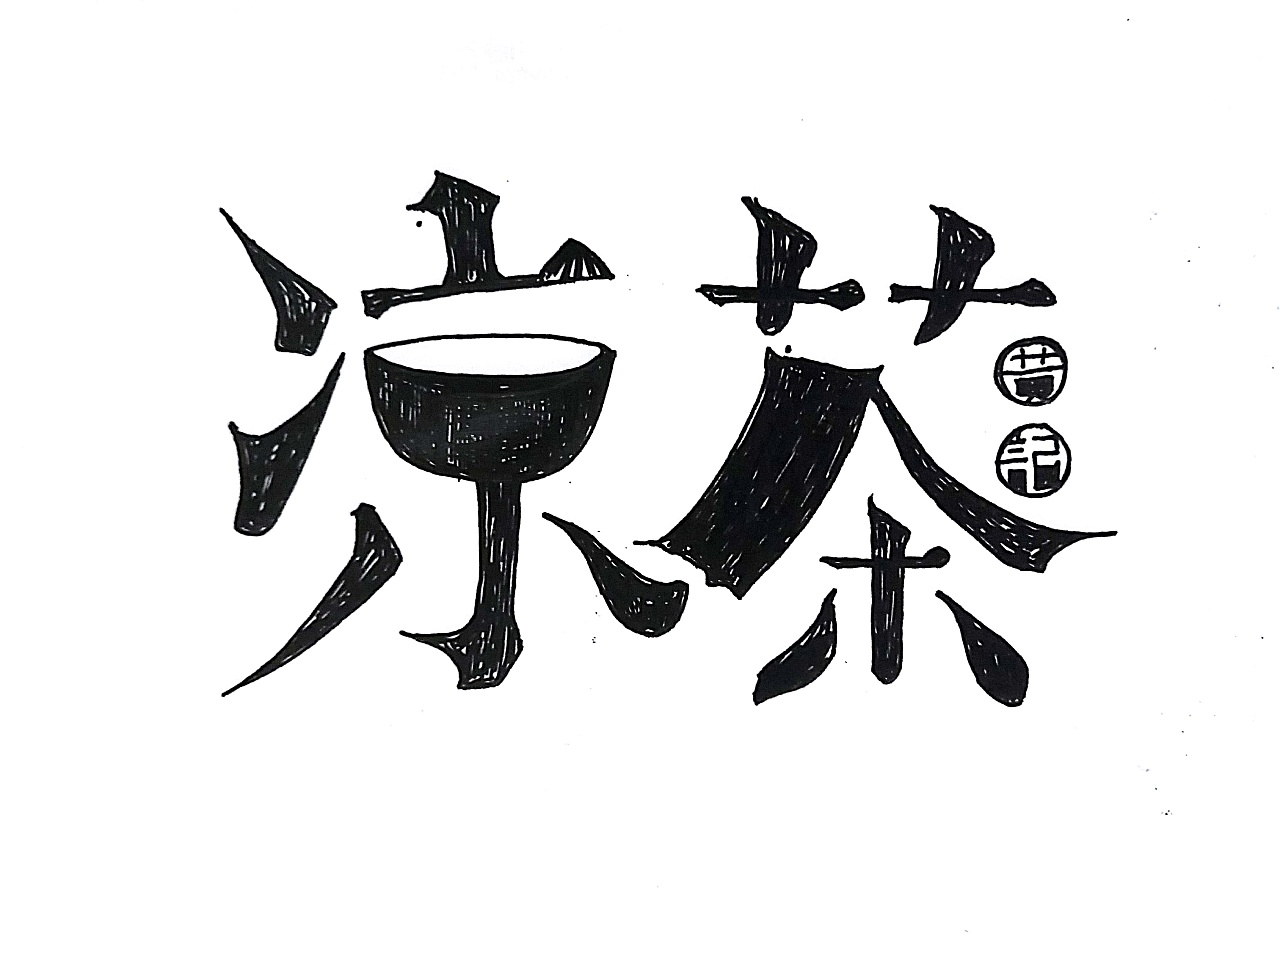 chinesefontdesign.com 2018 04 04 07 28 40 565218 18P Wonderful handwritten art chinese font design